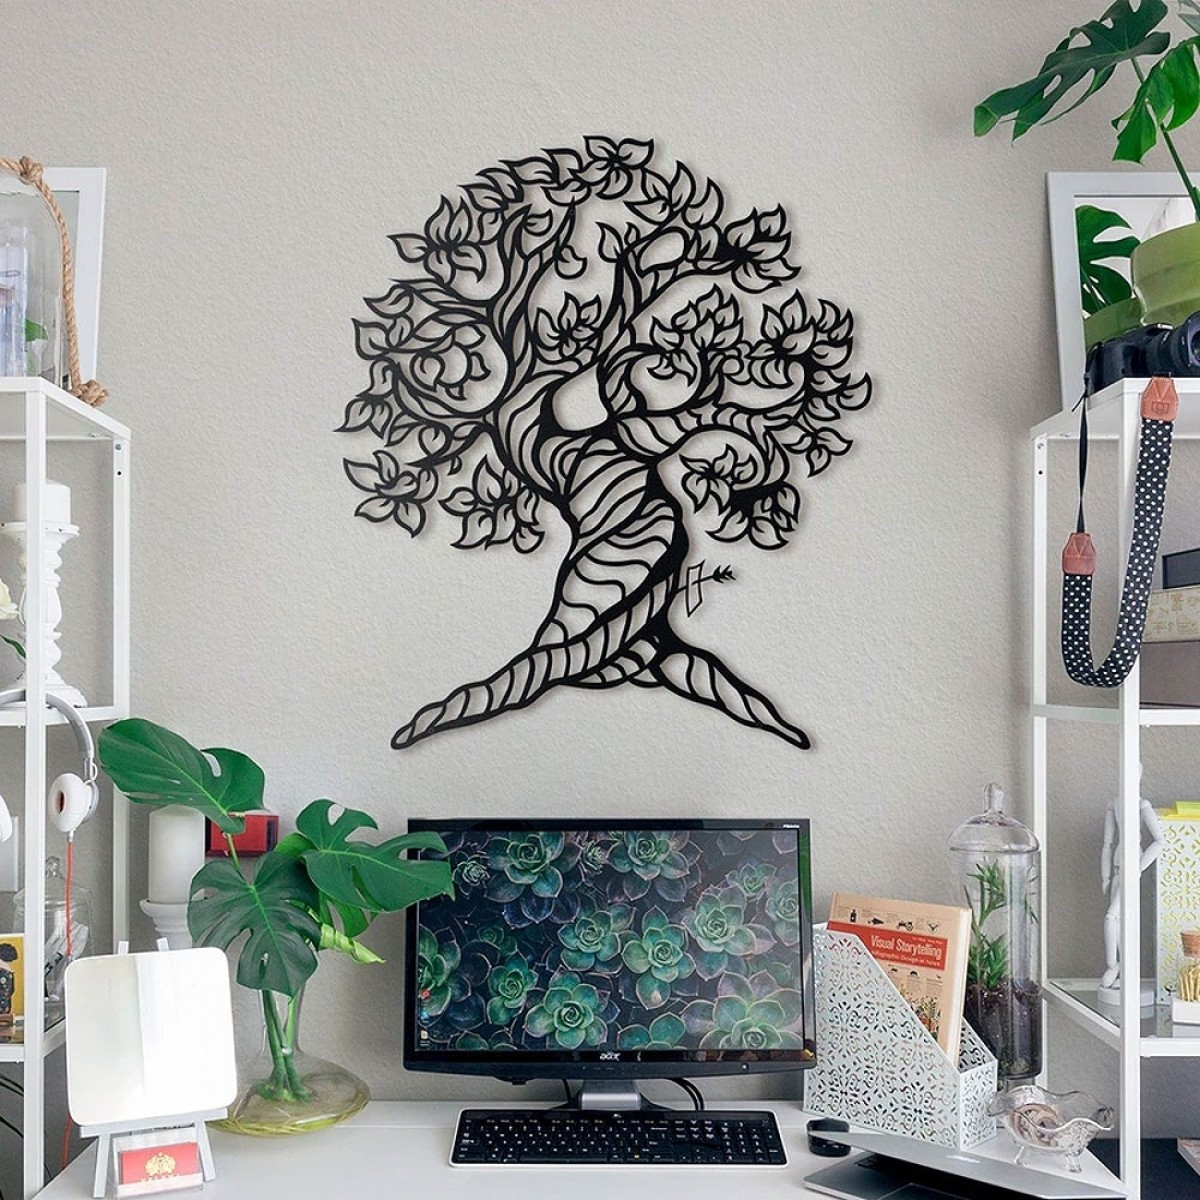 Orme Tree Wall Decor Throughout Tree Wall Decor (View 17 of 30)